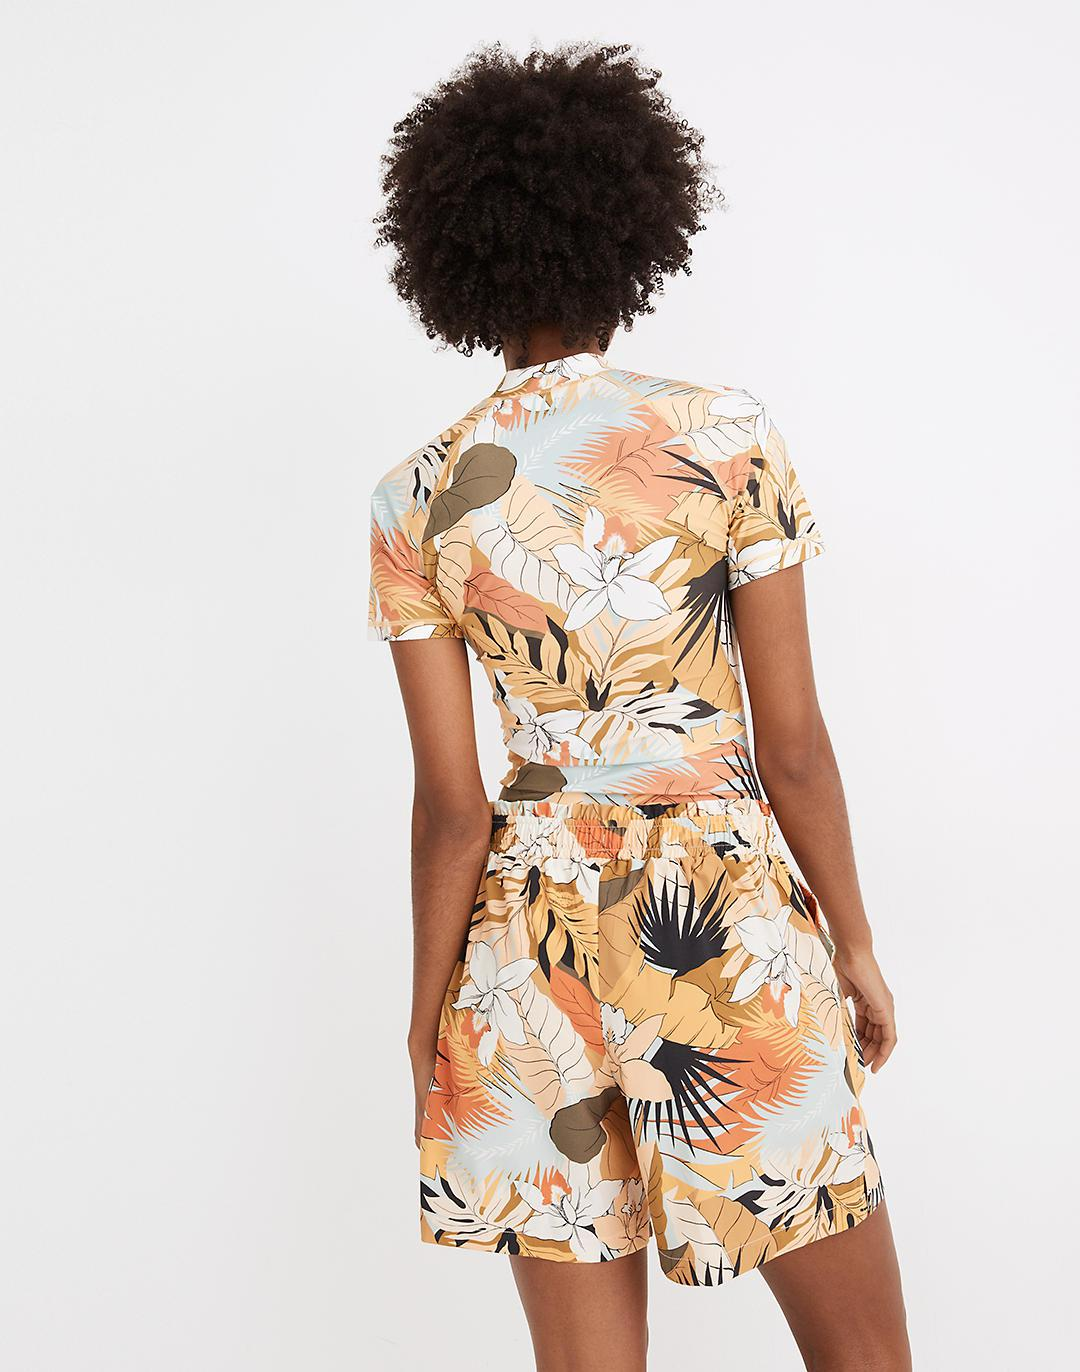 Madewell Second Wave Board Shorts in Tropical Vacation 2